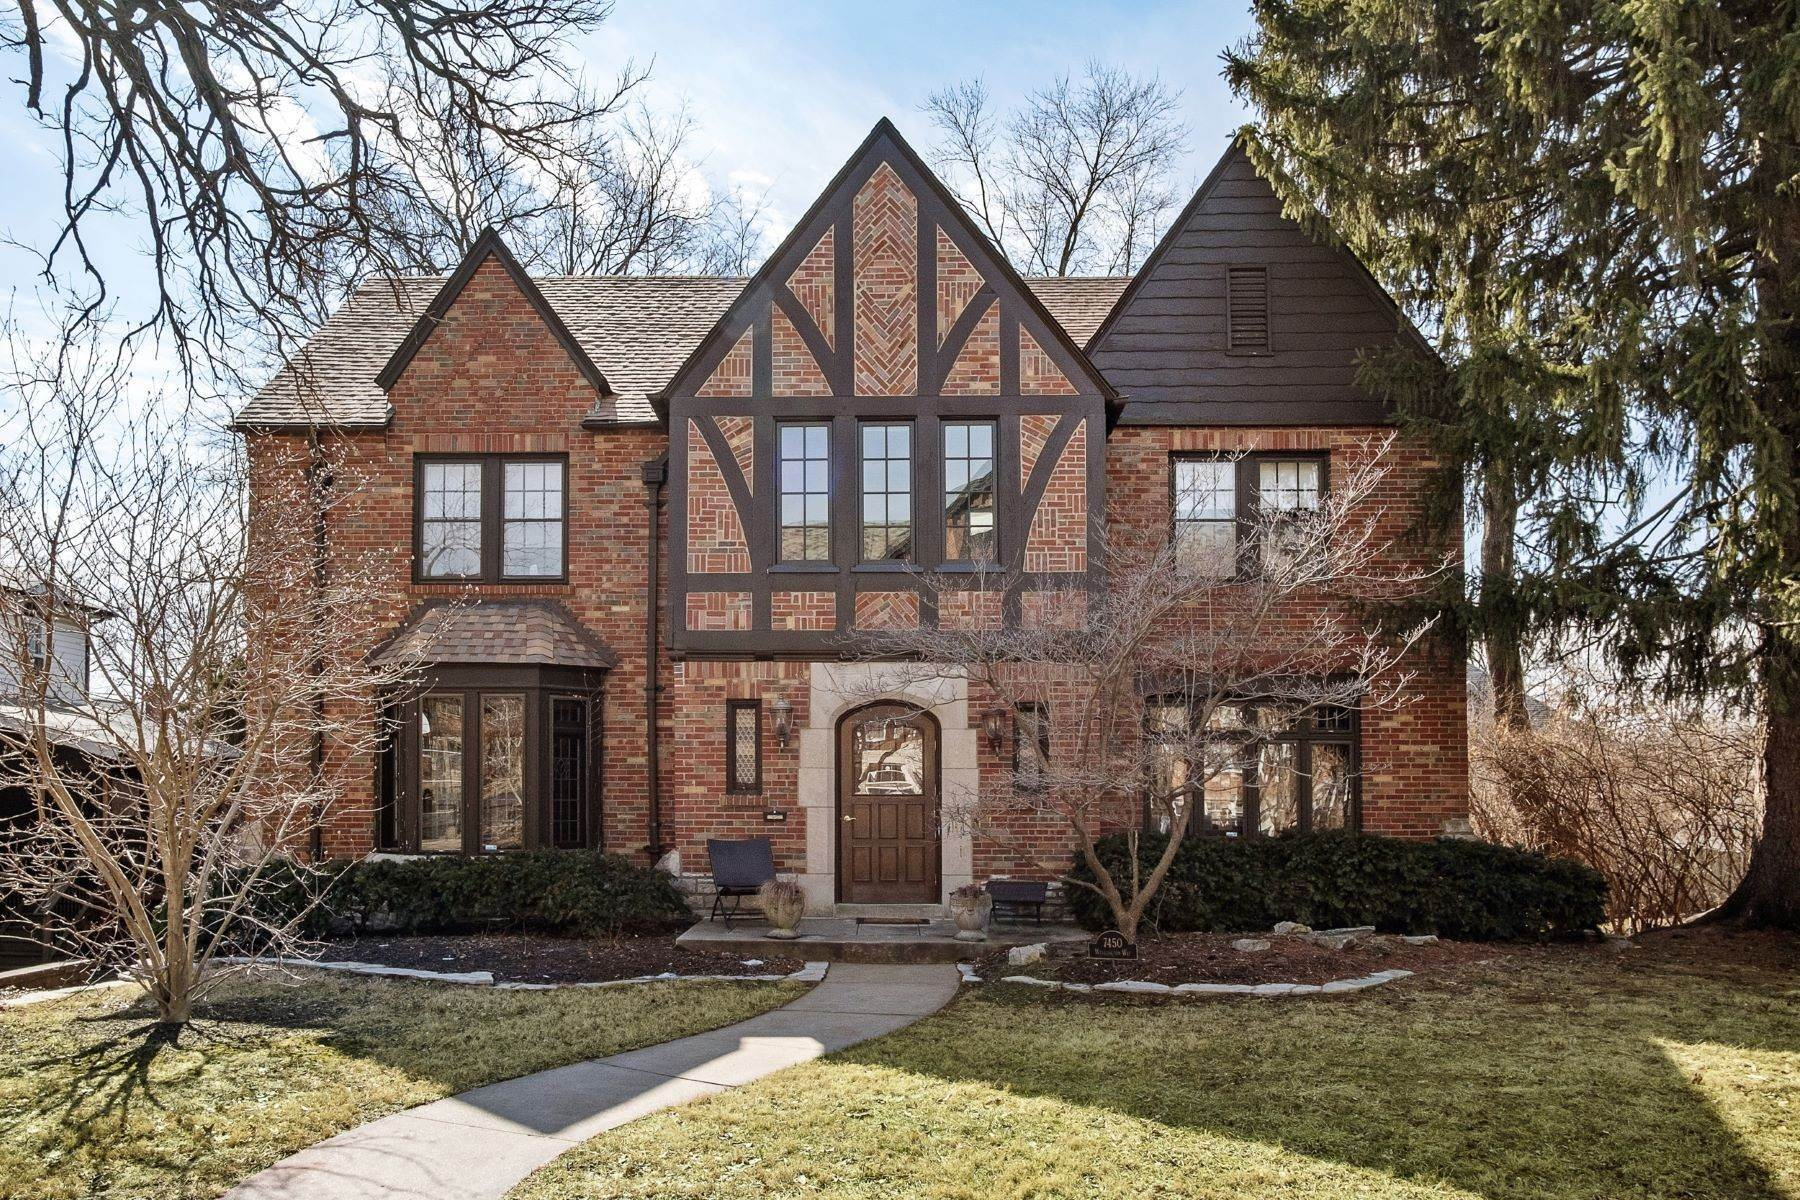 Property for Sale at Charming Two-Story English Tudor 7450 Wellington Way Clayton, Missouri 63105 United States